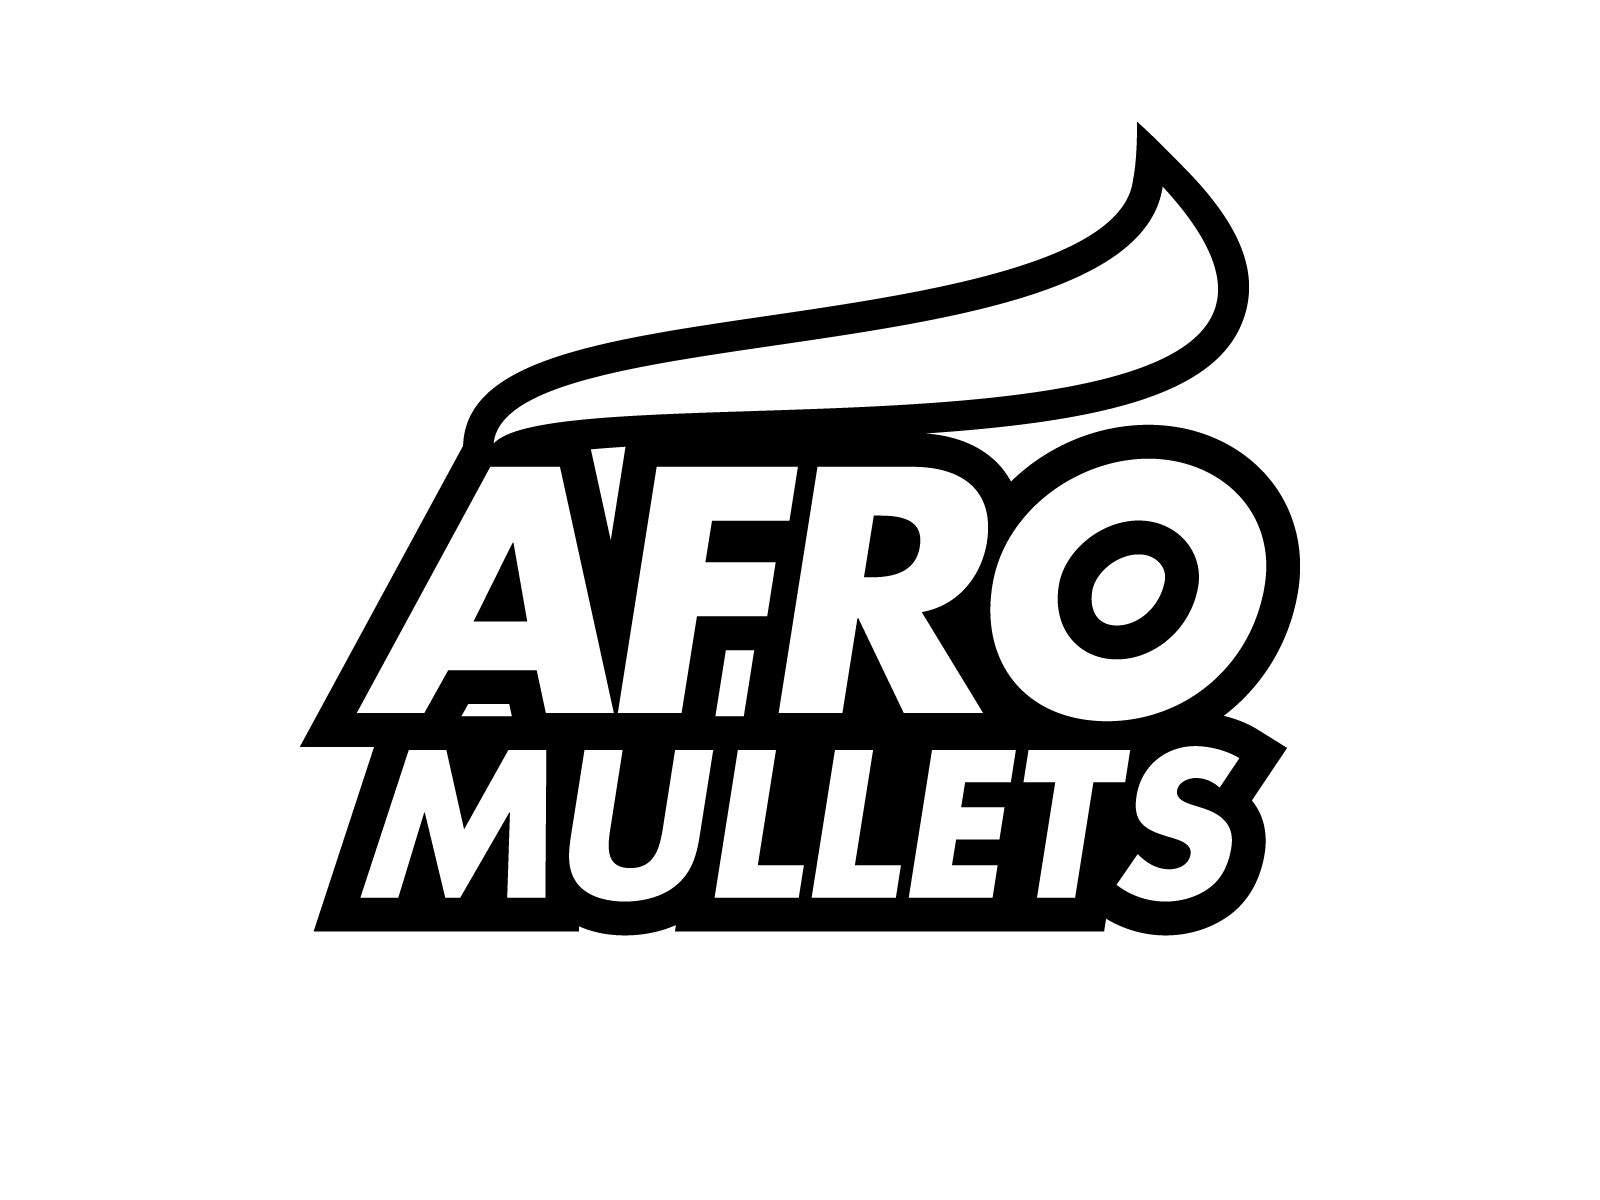 afromullets